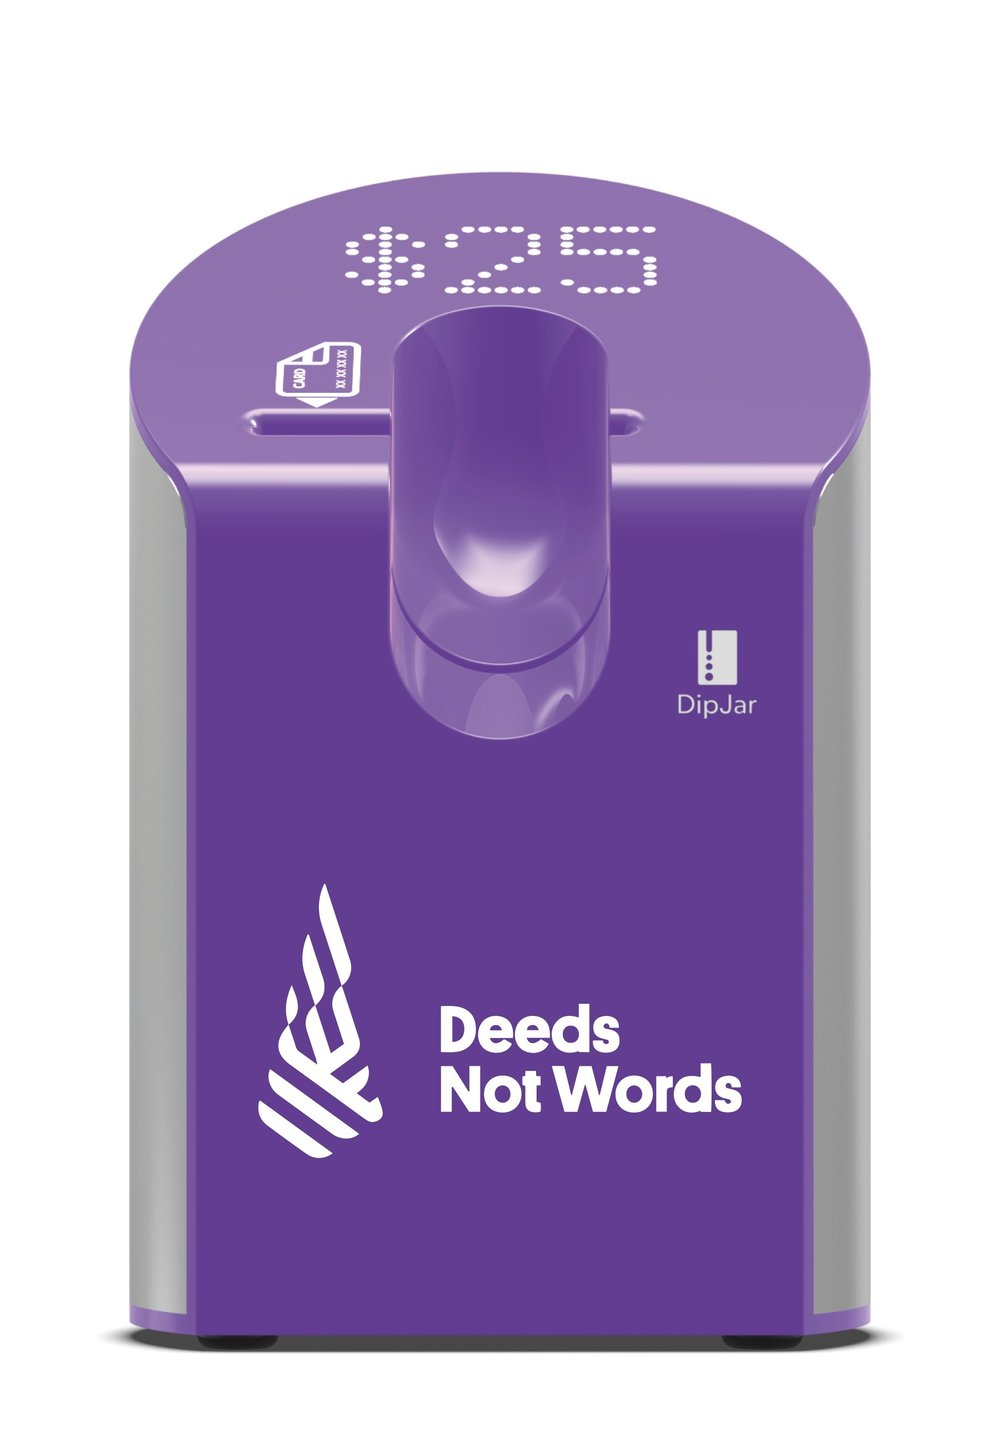 Deeds not words render .jpg